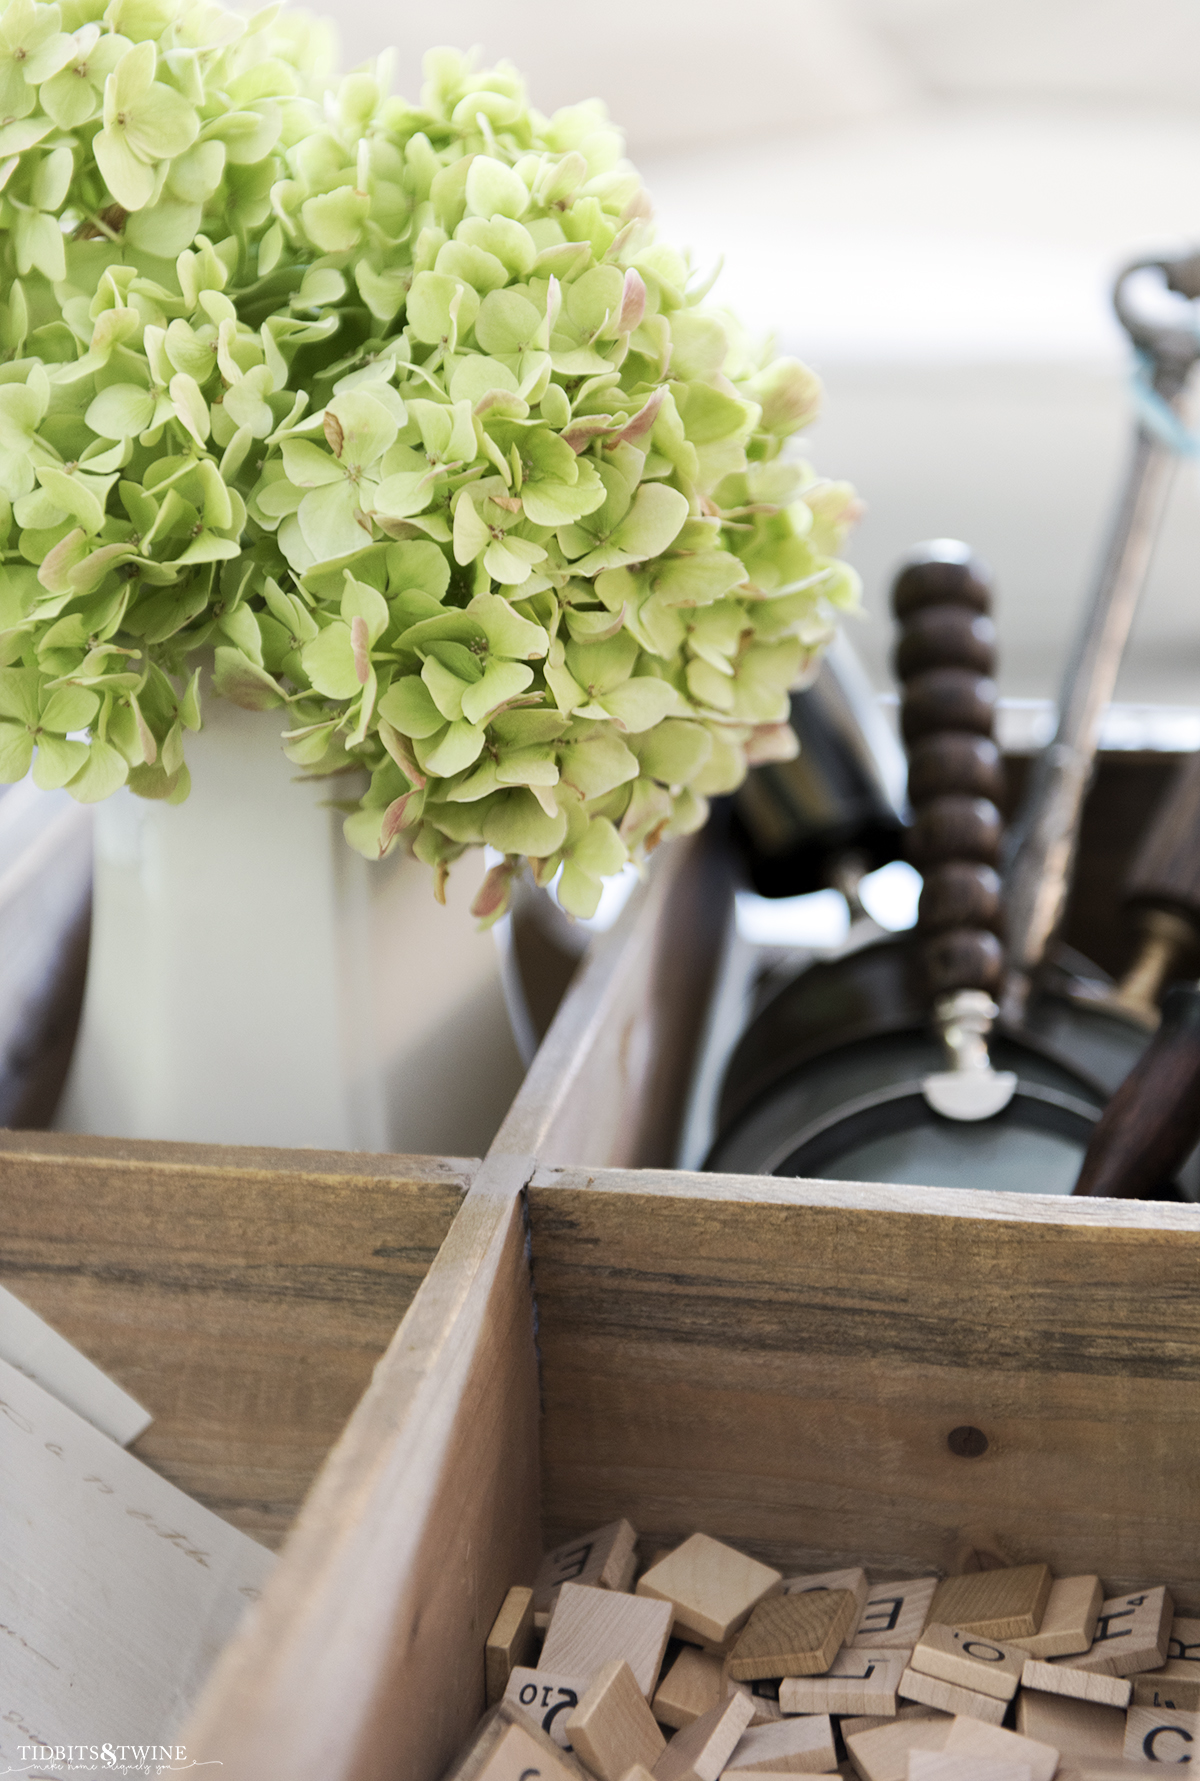 white ironstone vase filled with green hydrangea that are drying in a wooden box with magnifying glasses and scrabble tiles on coffee table